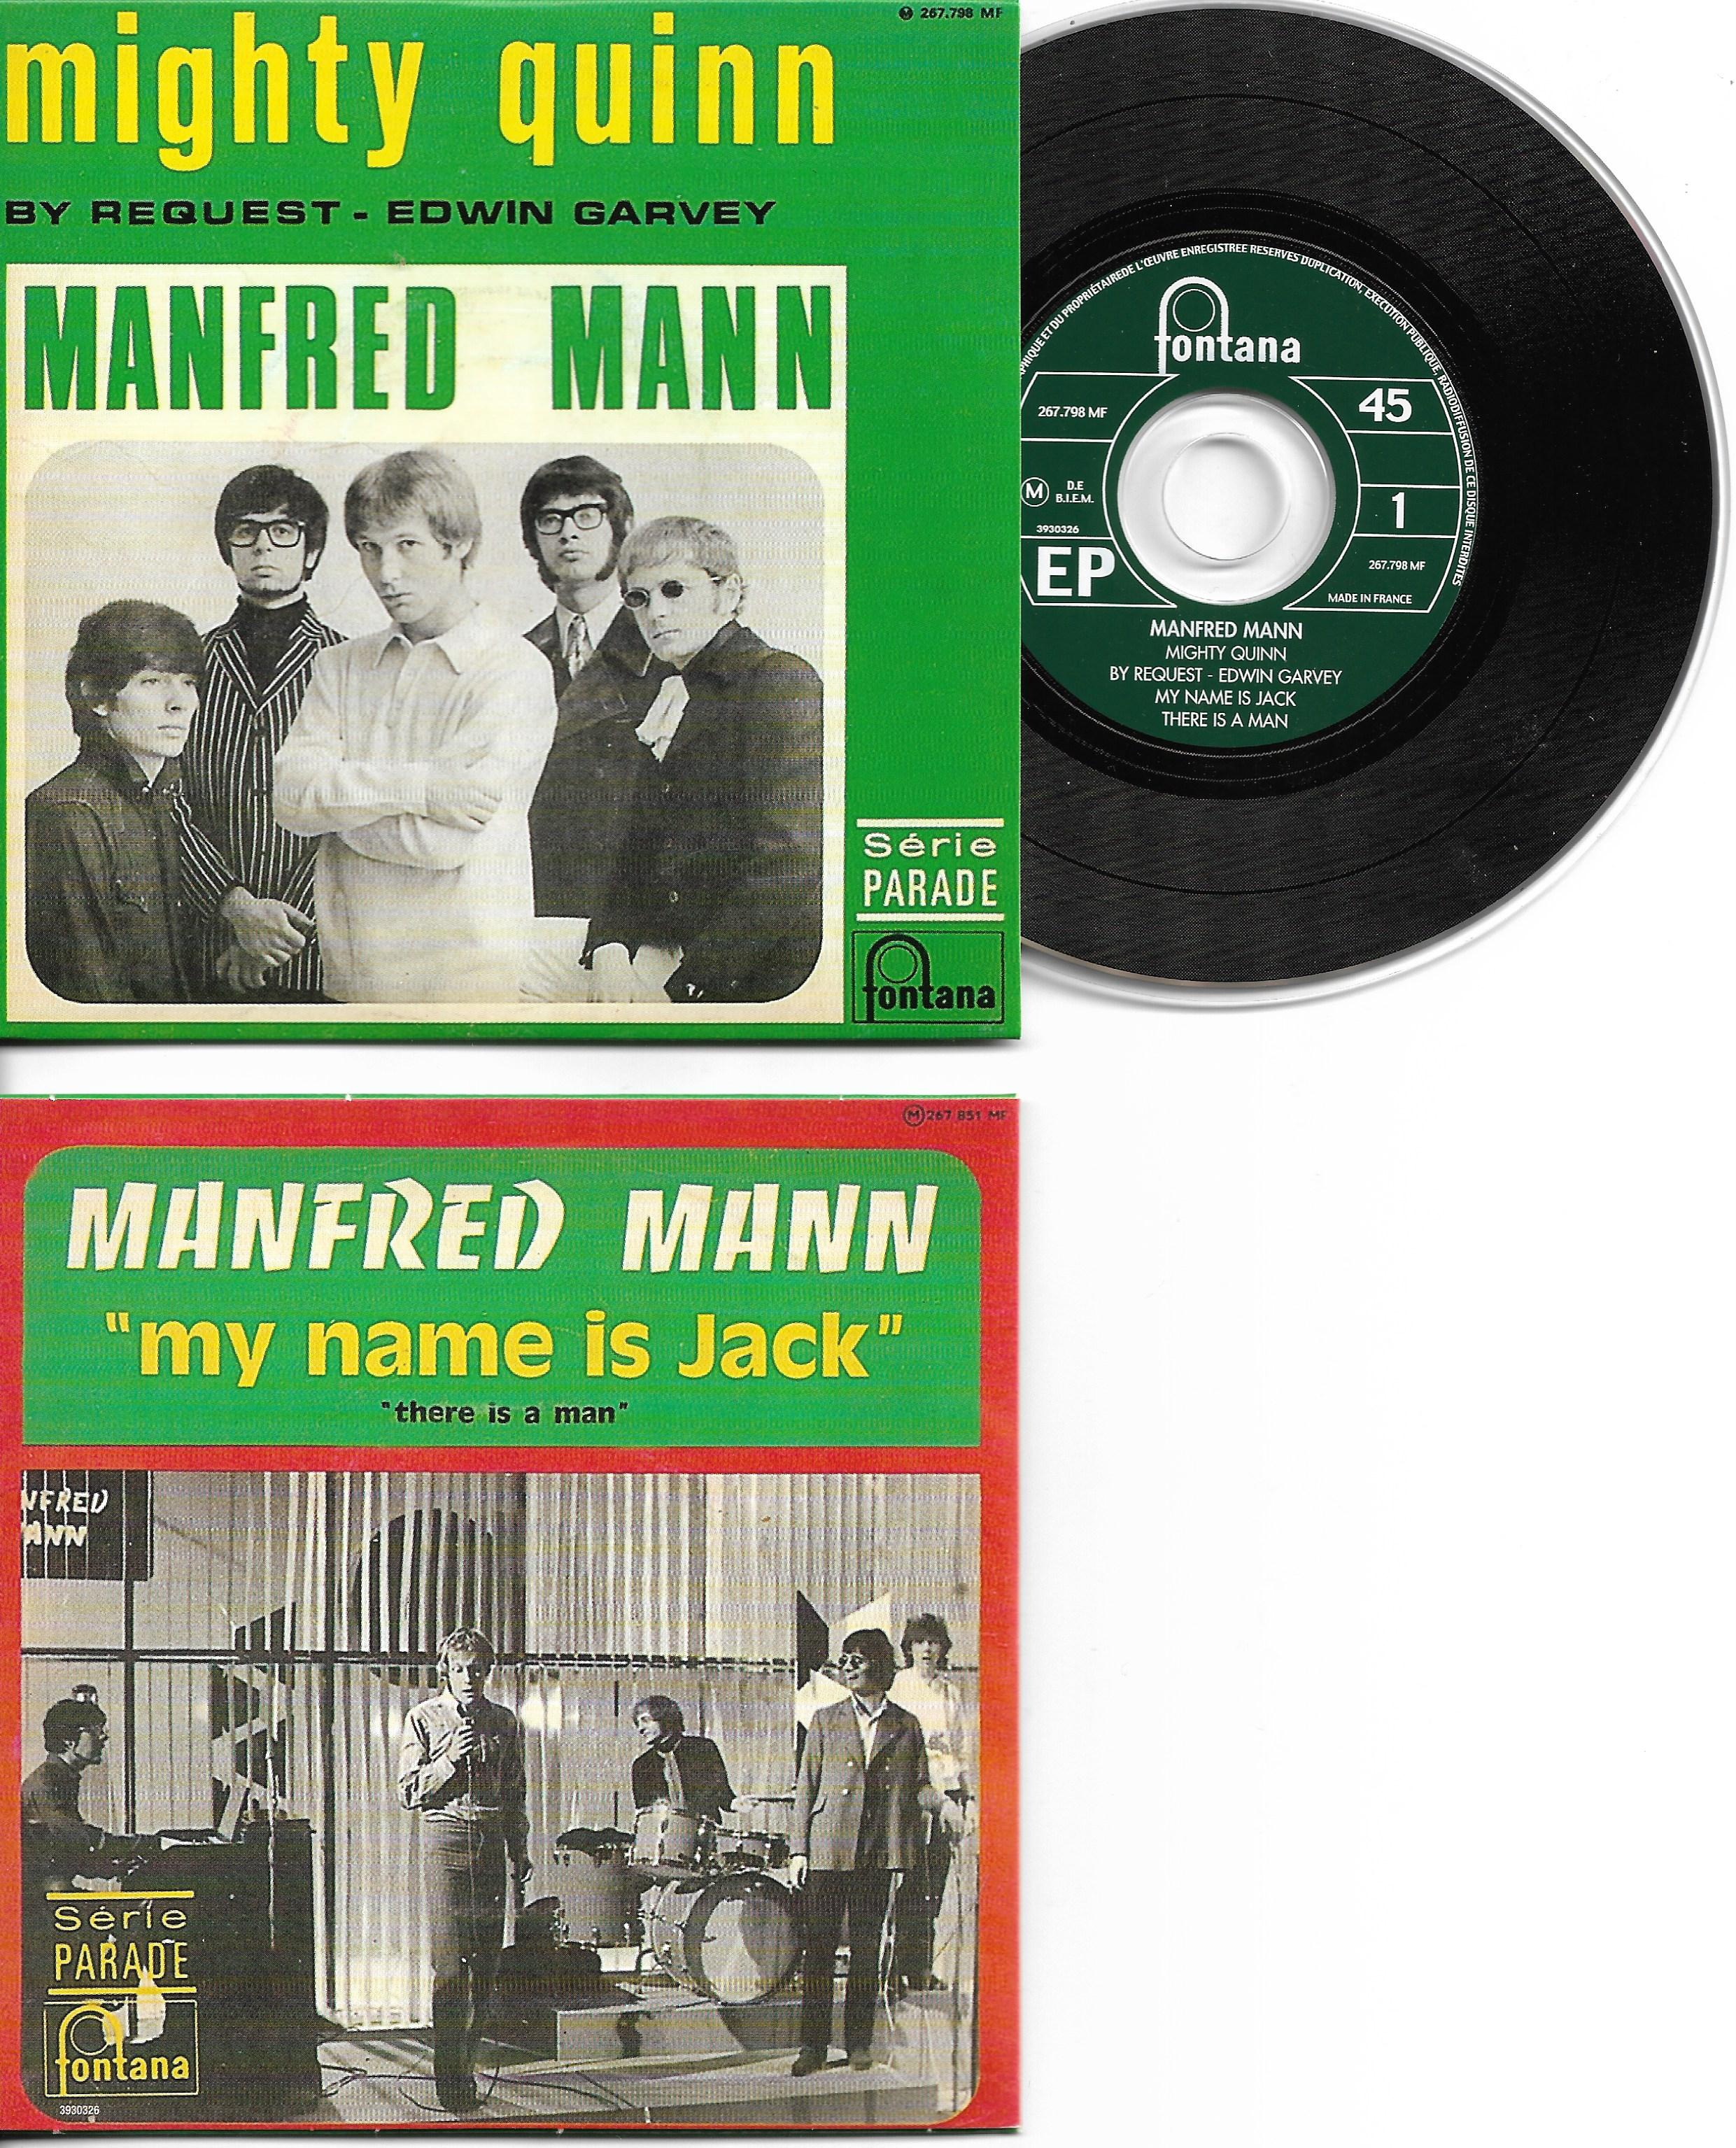 MANFRED MANN - Mighty Quinn 4-track Card Sleeve - French Sleeve - Very Limited Edition